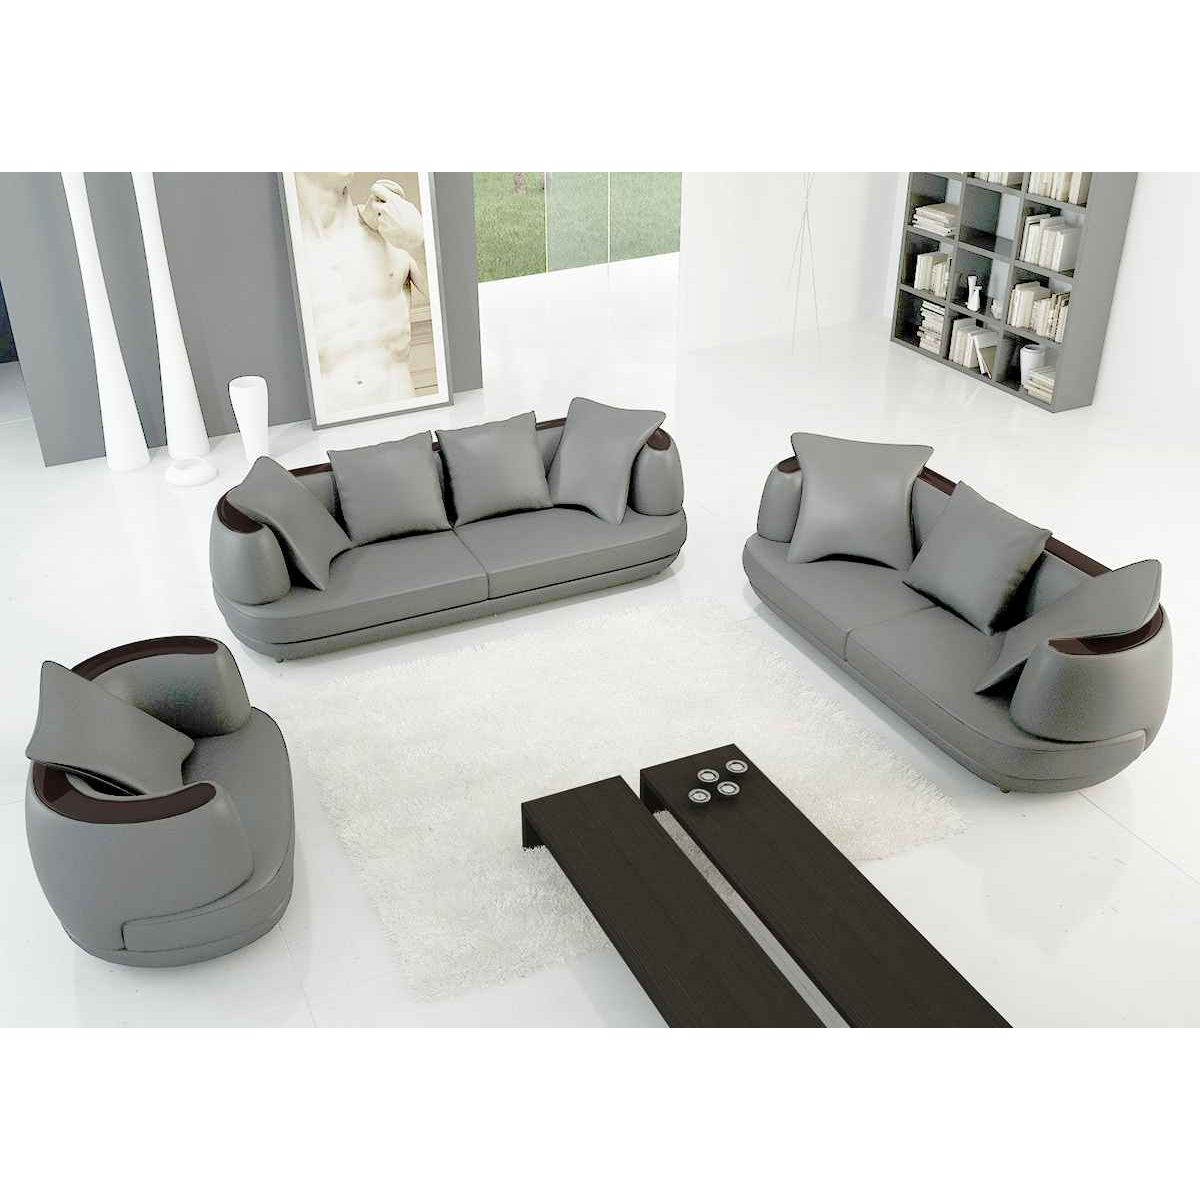 Deco in paris ensemble canape 3 2 1 places en cuir gris for Canape 2 places arrondi